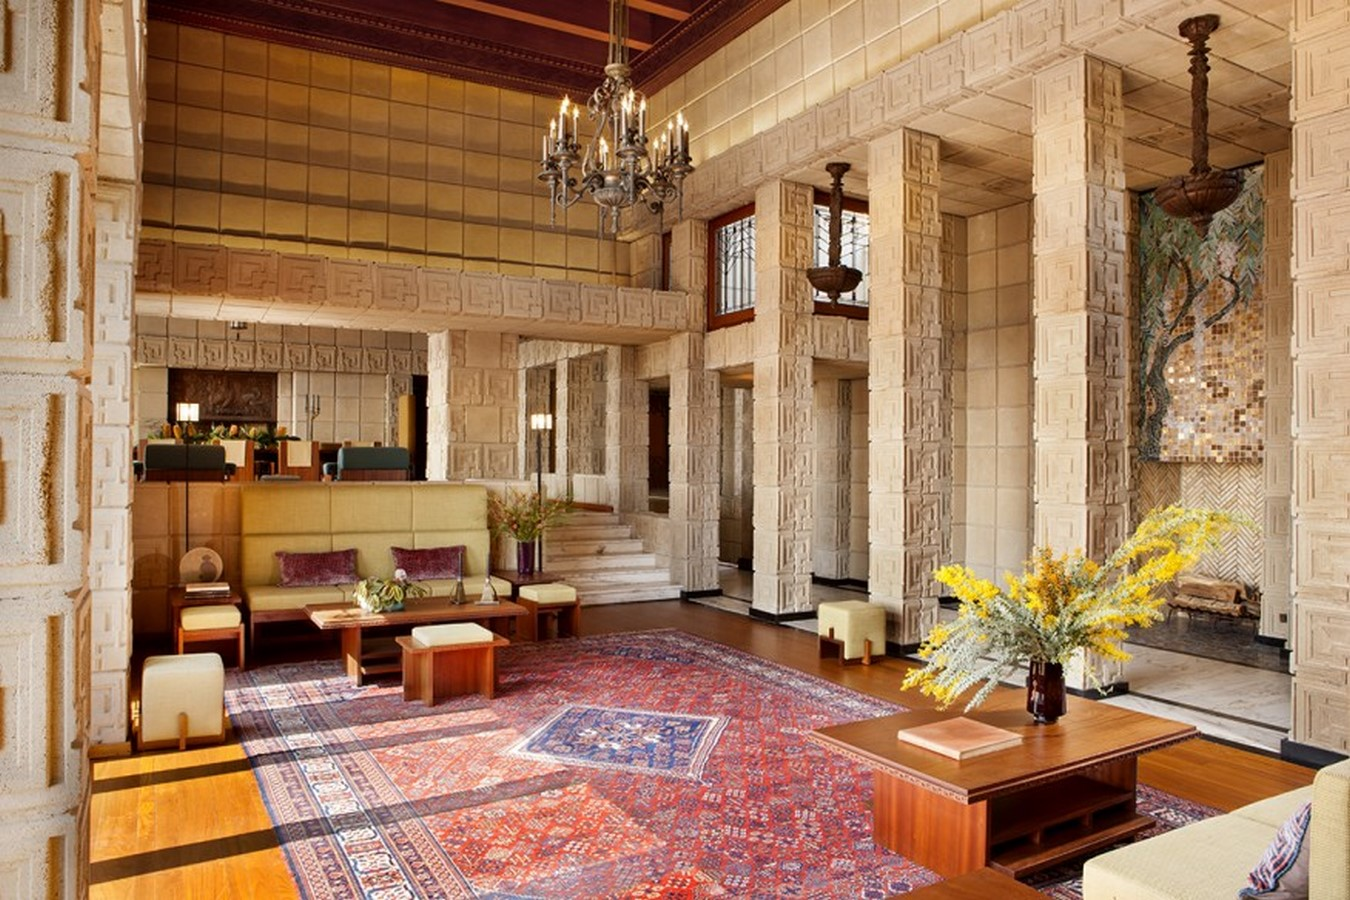 Ennis House by Frank Lloyd Wright A series of concrete block - Sheet6